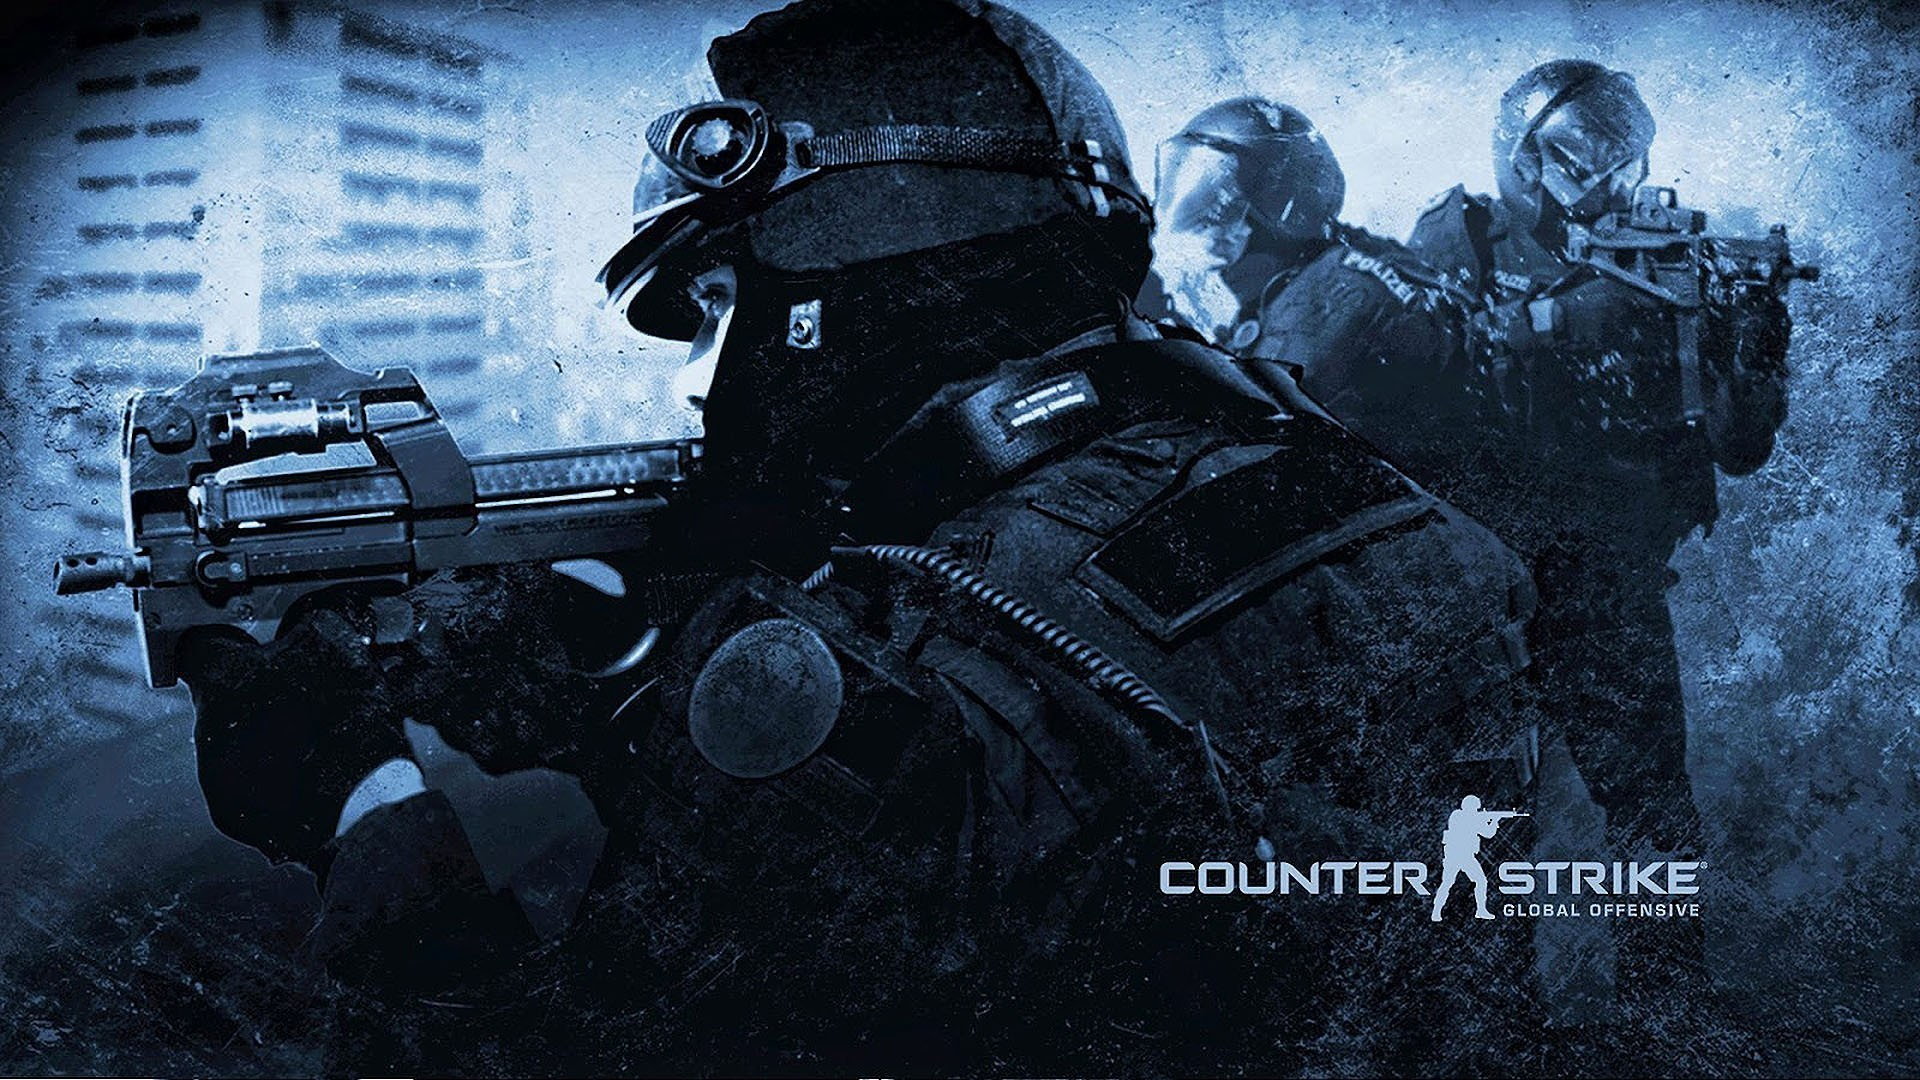 counter-strike-global-offensive-game-hd-wallpaper-1920×1080-